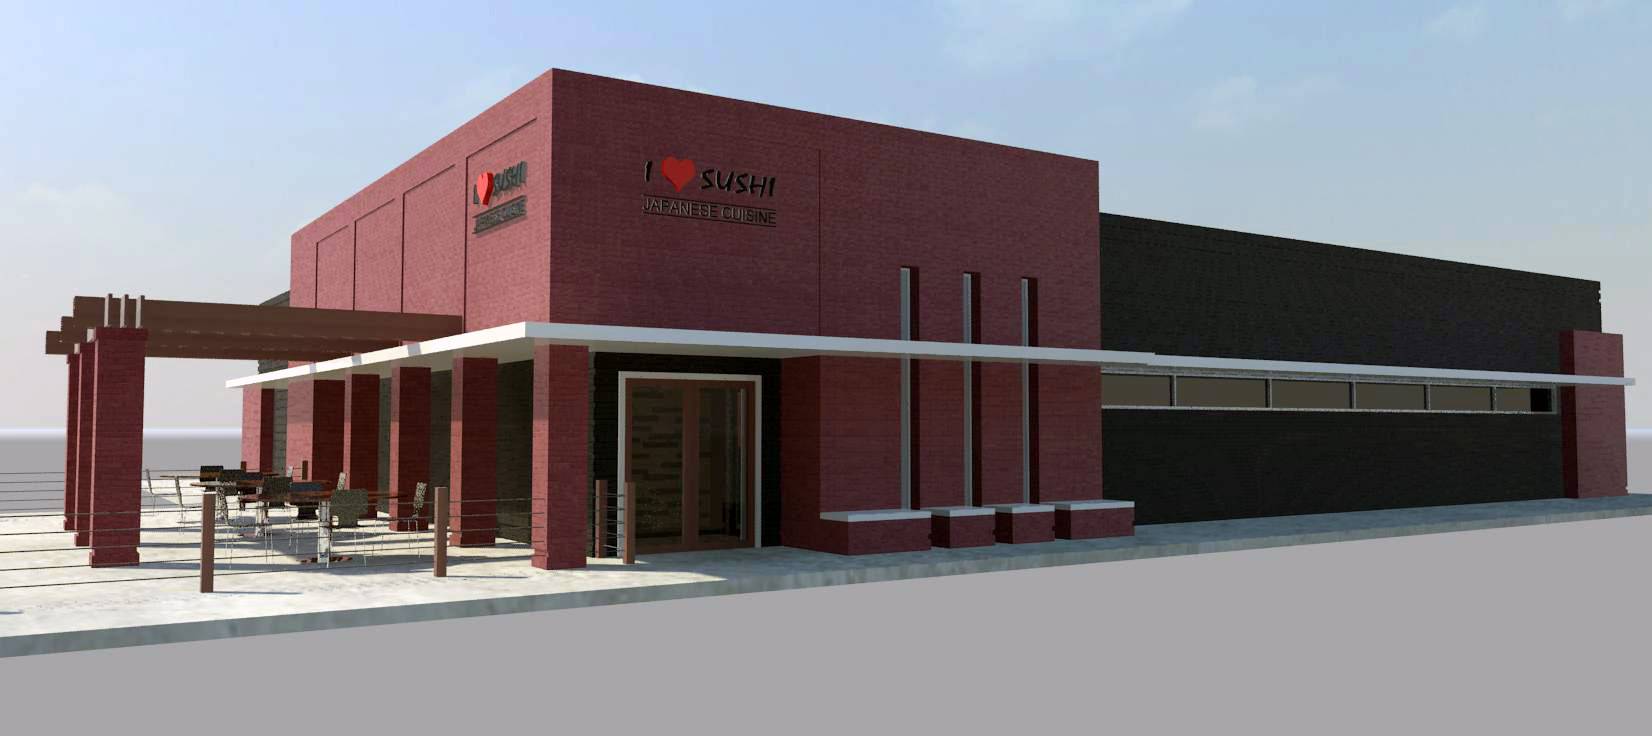 Rendering of Exterior and Entry